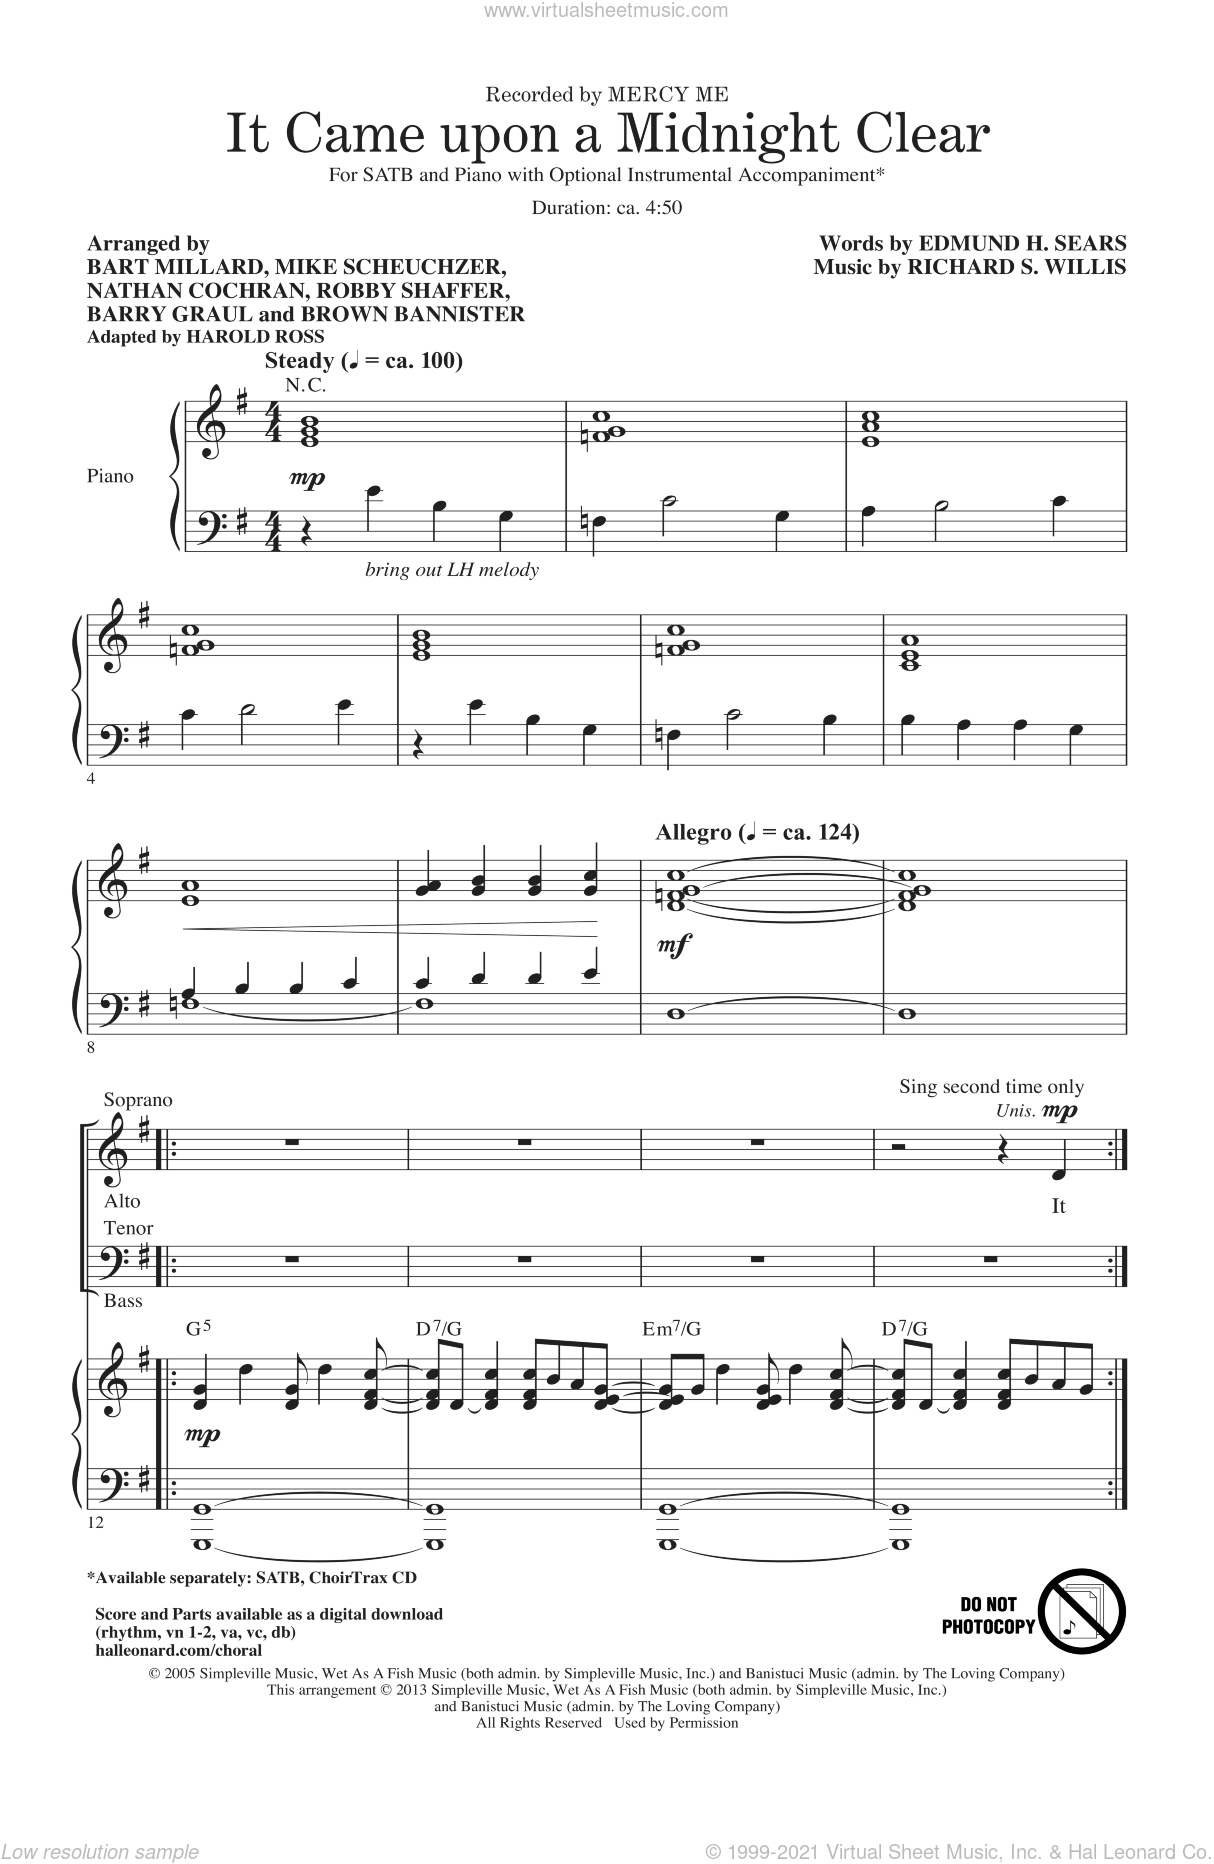 It Came Upon A Midnight Clear sheet music for choir and piano (SATB) by Harold Ross